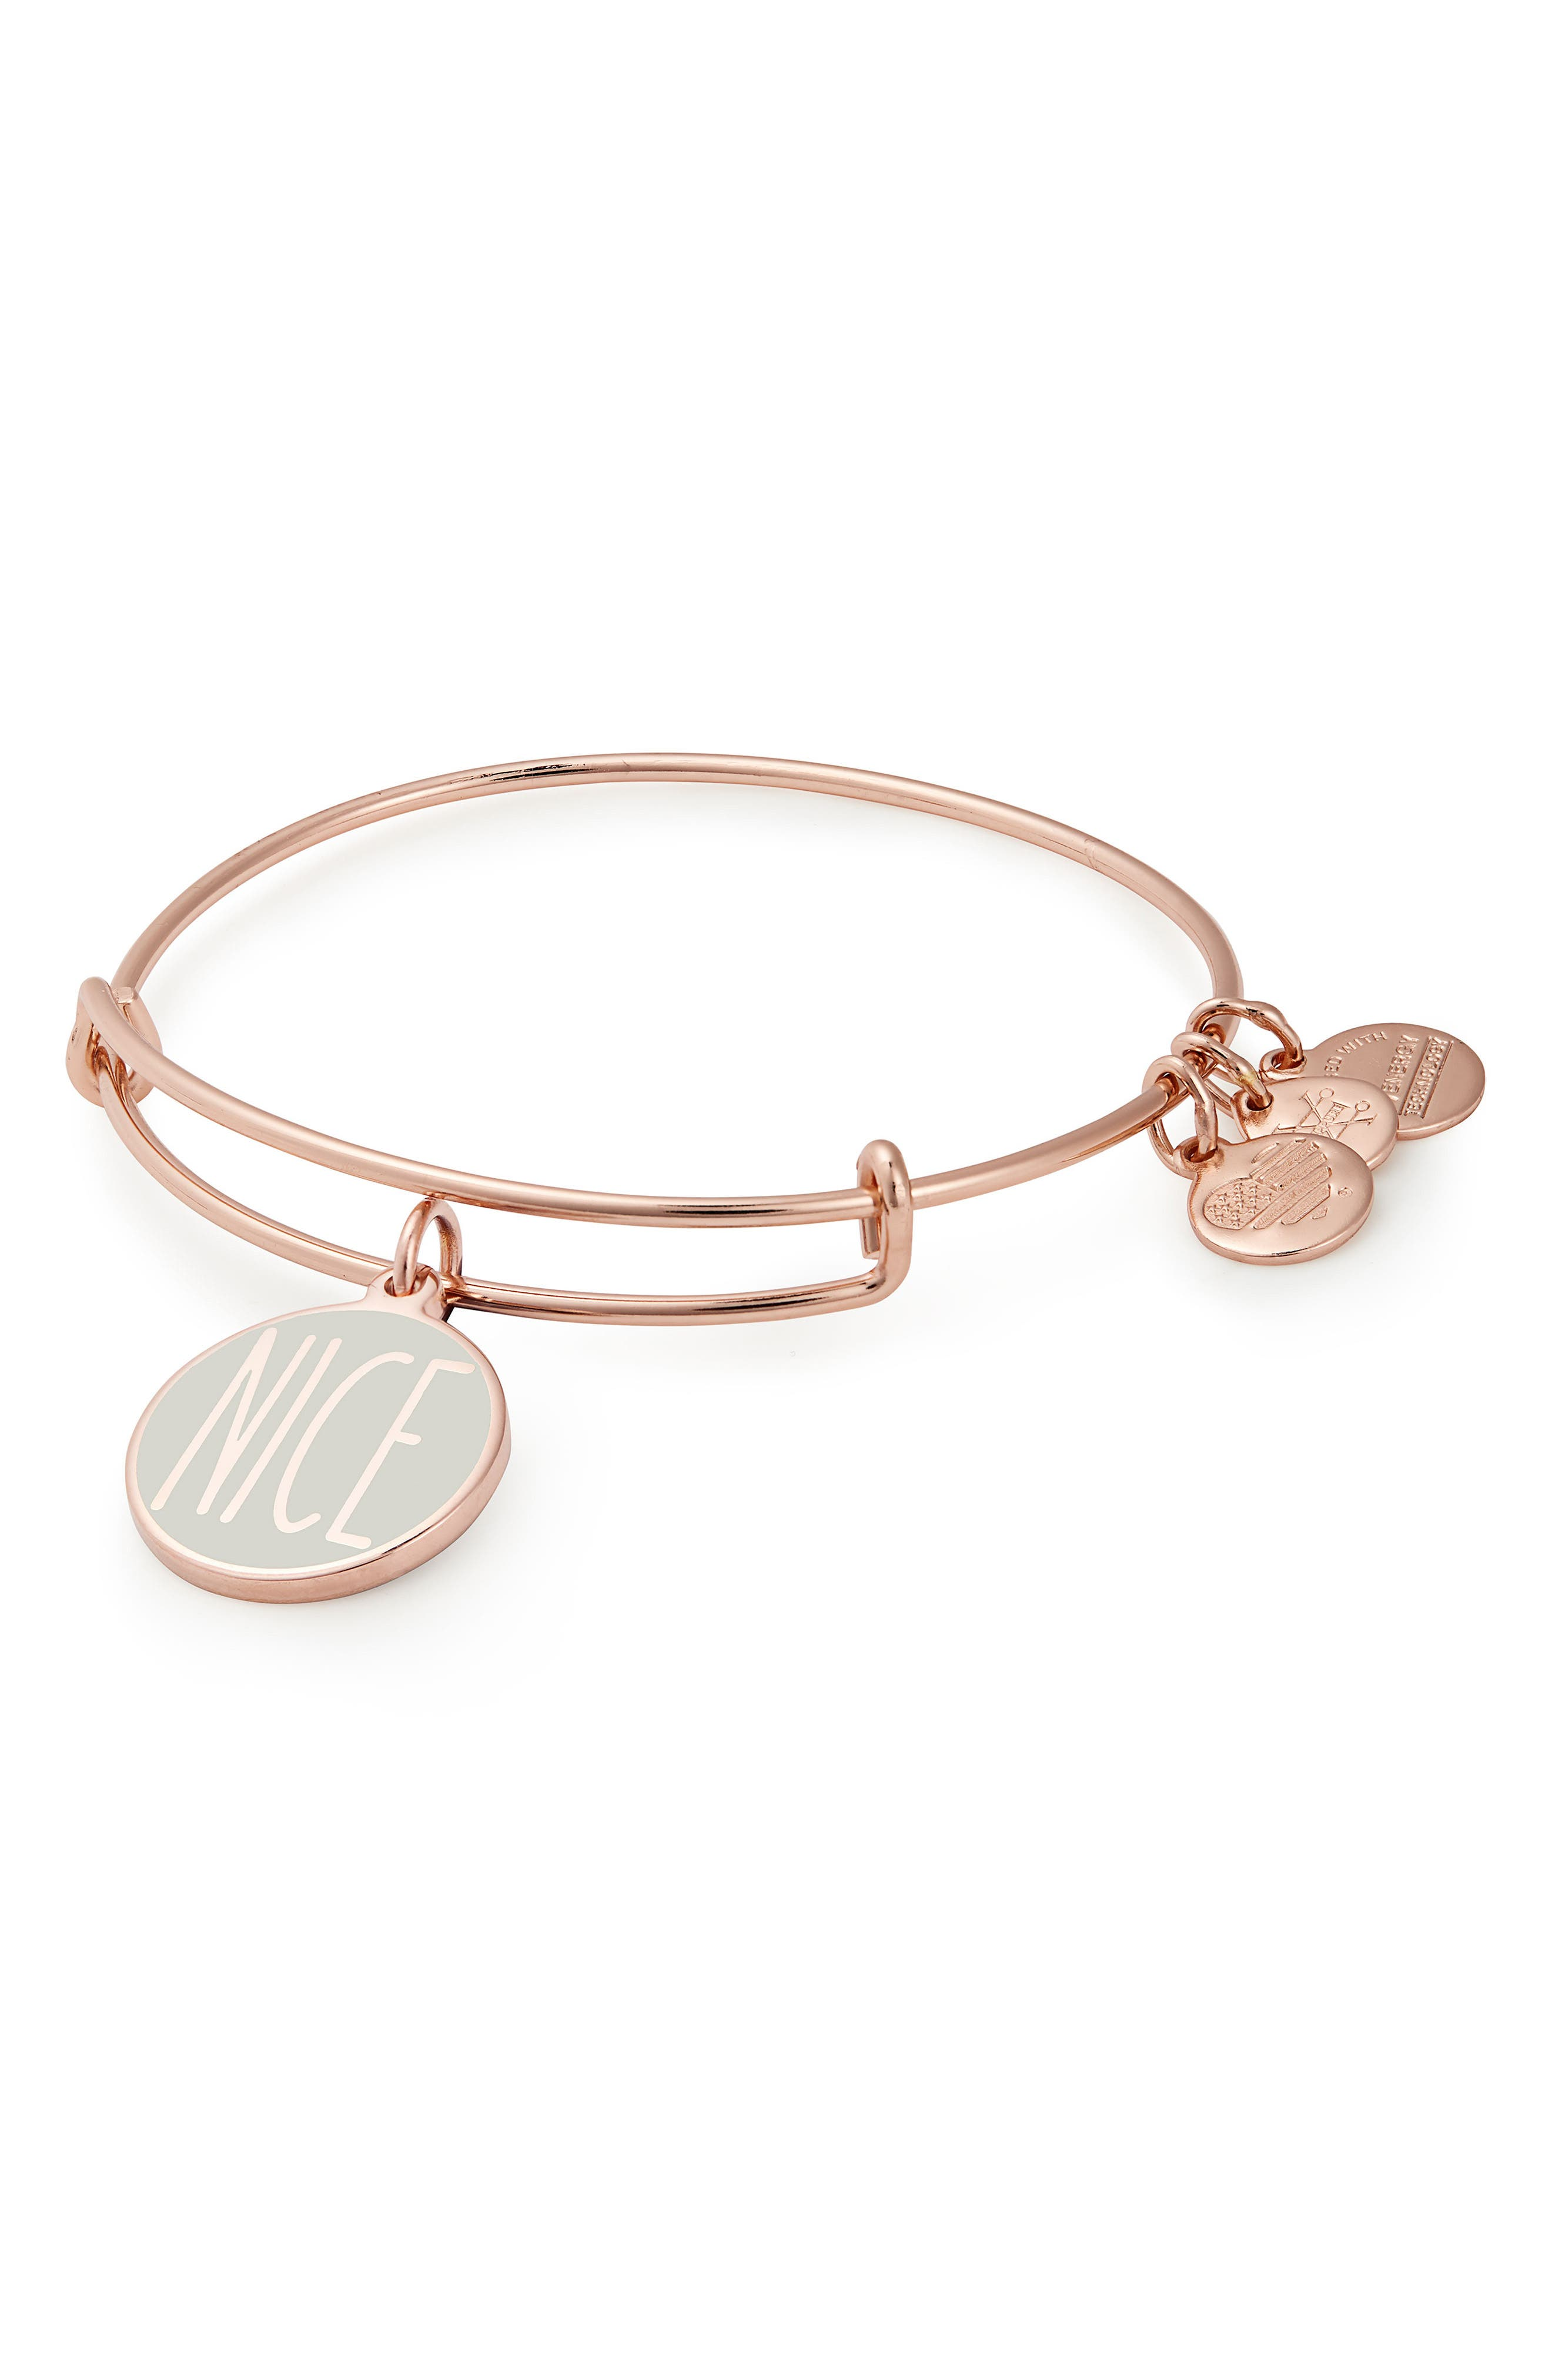 ALEX AND ANI Words are Powerful - Naughty or Nice Bangle, Main, color, 650